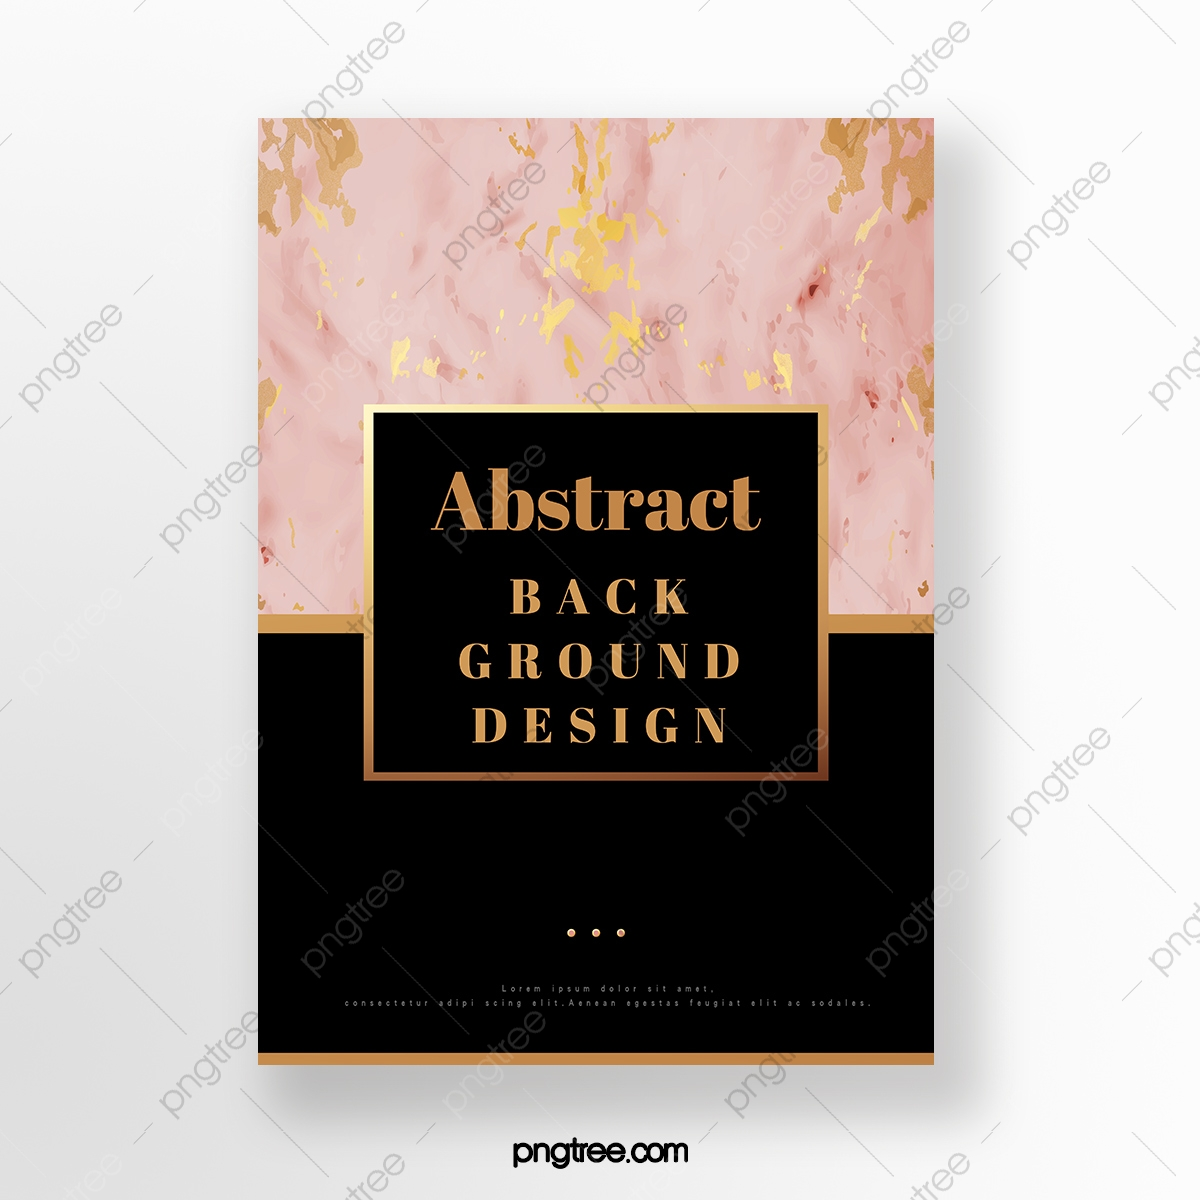 Marble Poster With Rose Gold Geometric Patterns Template Download On Pngtree